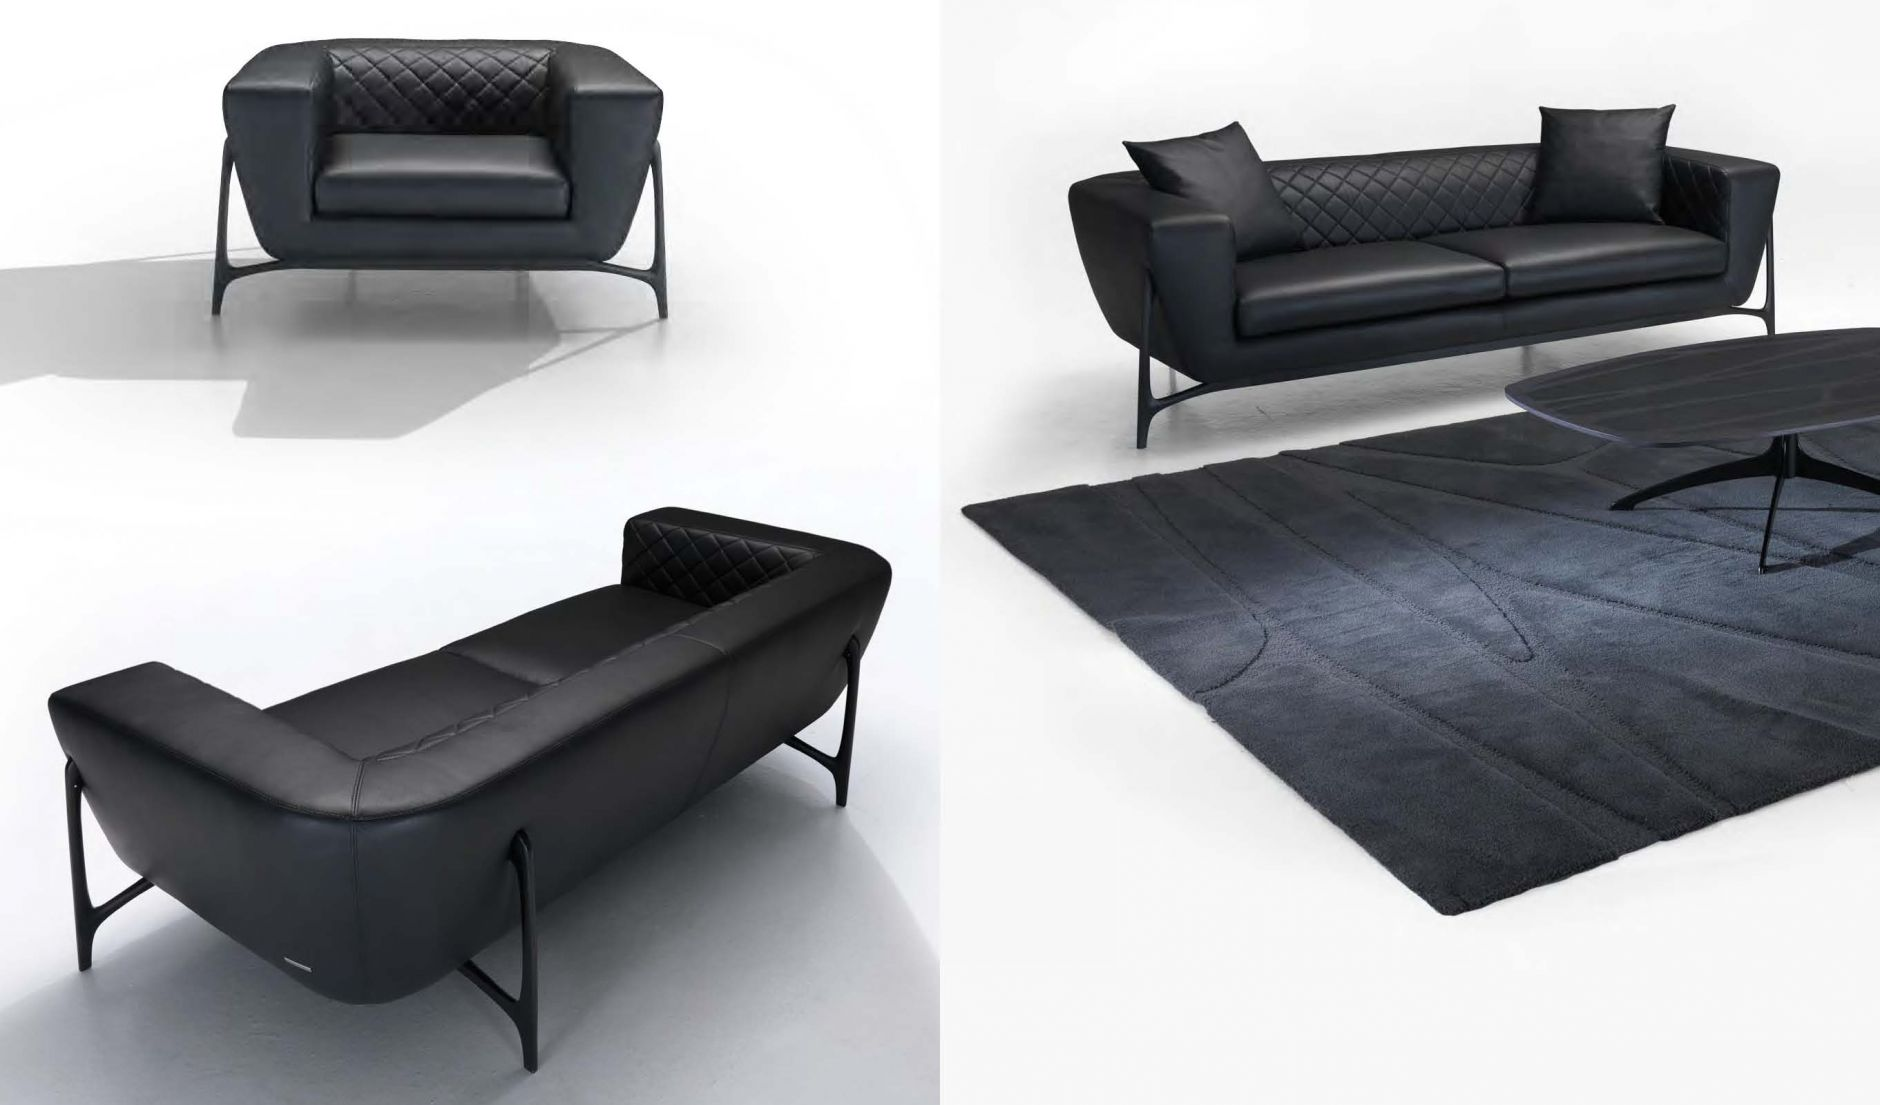 Upholstered sofa vip luxury sectional sofa mercedes benz for Mercedes benz furniture